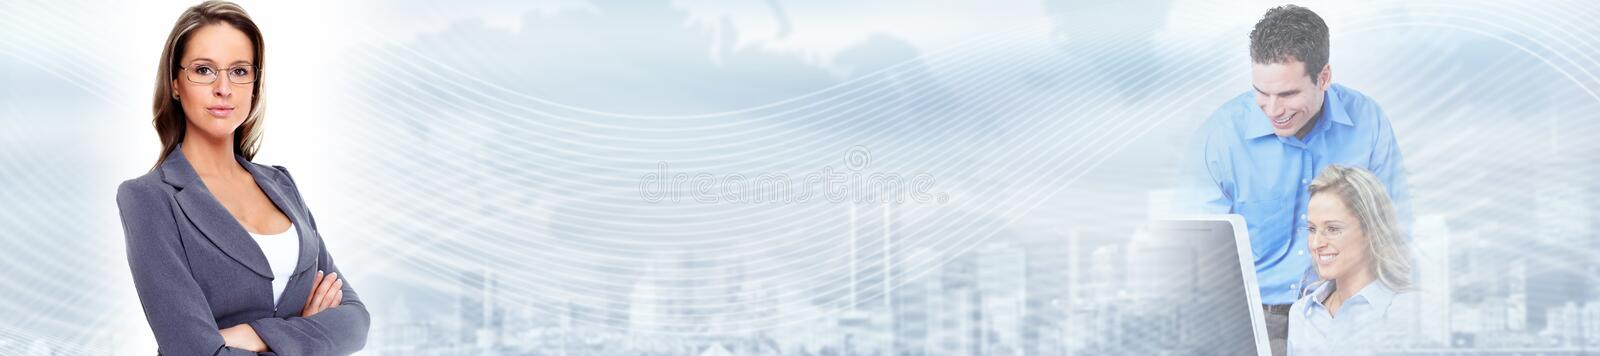 Business background. Business people group over abstract financial background stock photo